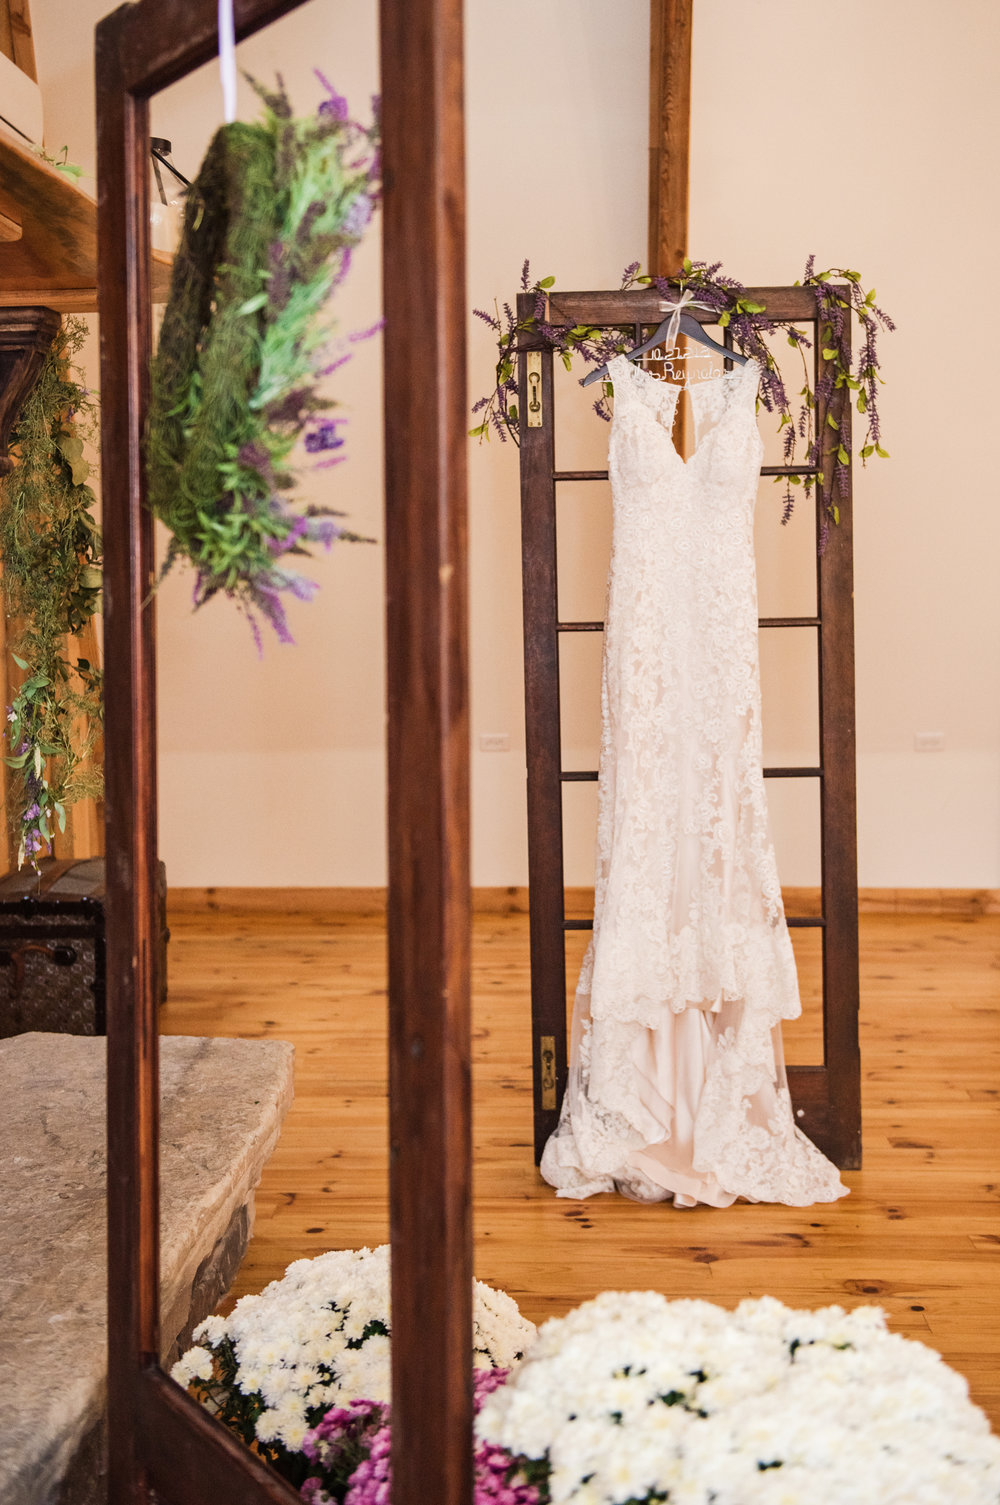 Wolf_Oak_Acres_Central_NY_Wedding_JILL_STUDIO_Rochester_NY_Photographer_DSC_6951.jpg